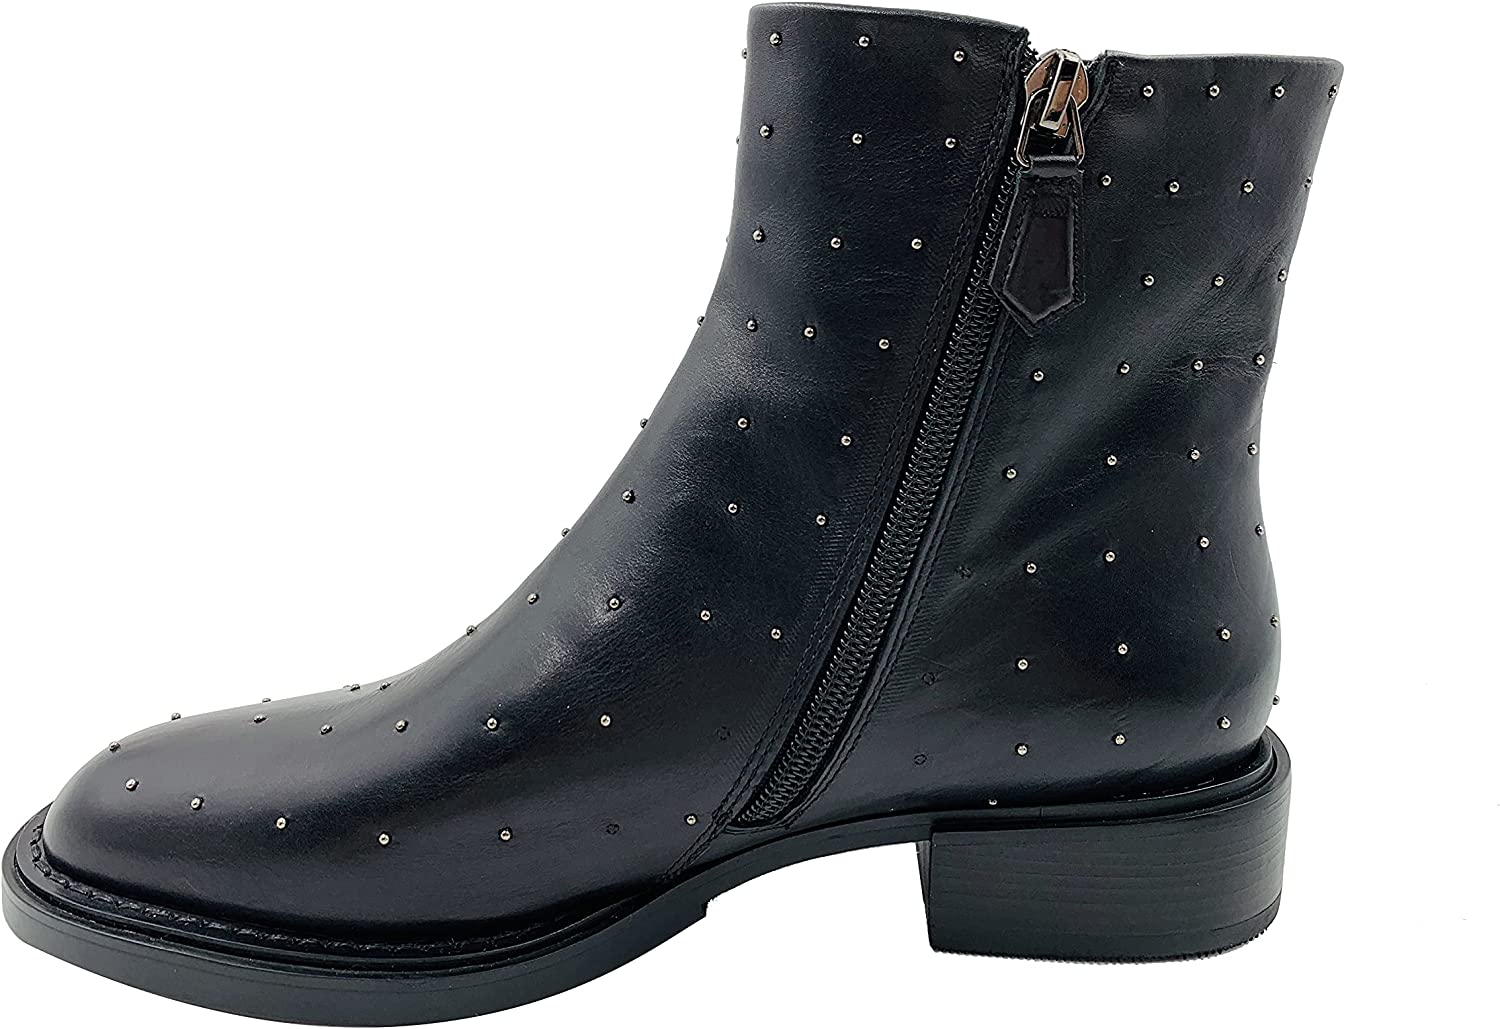 Luanong Boots for Women Woman's Toe Booties Covering Round Nail Ranking TOP17 Some reservation